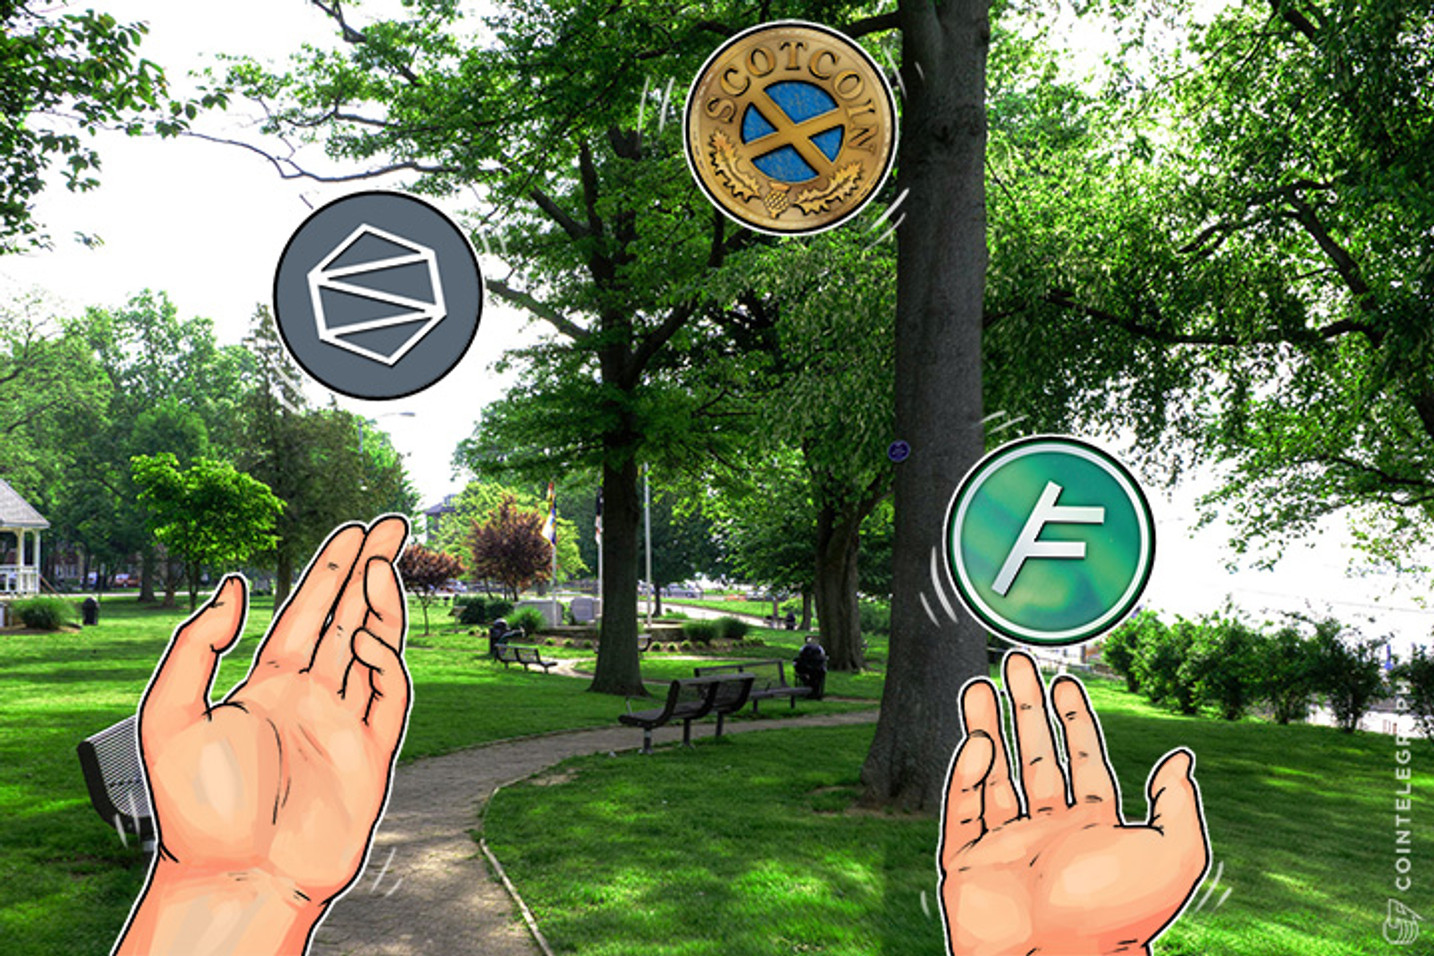 Auroracoin, Sterlingcoin, Scotcoin: National Cryptocurrencies Provide Alternative to Central Banking